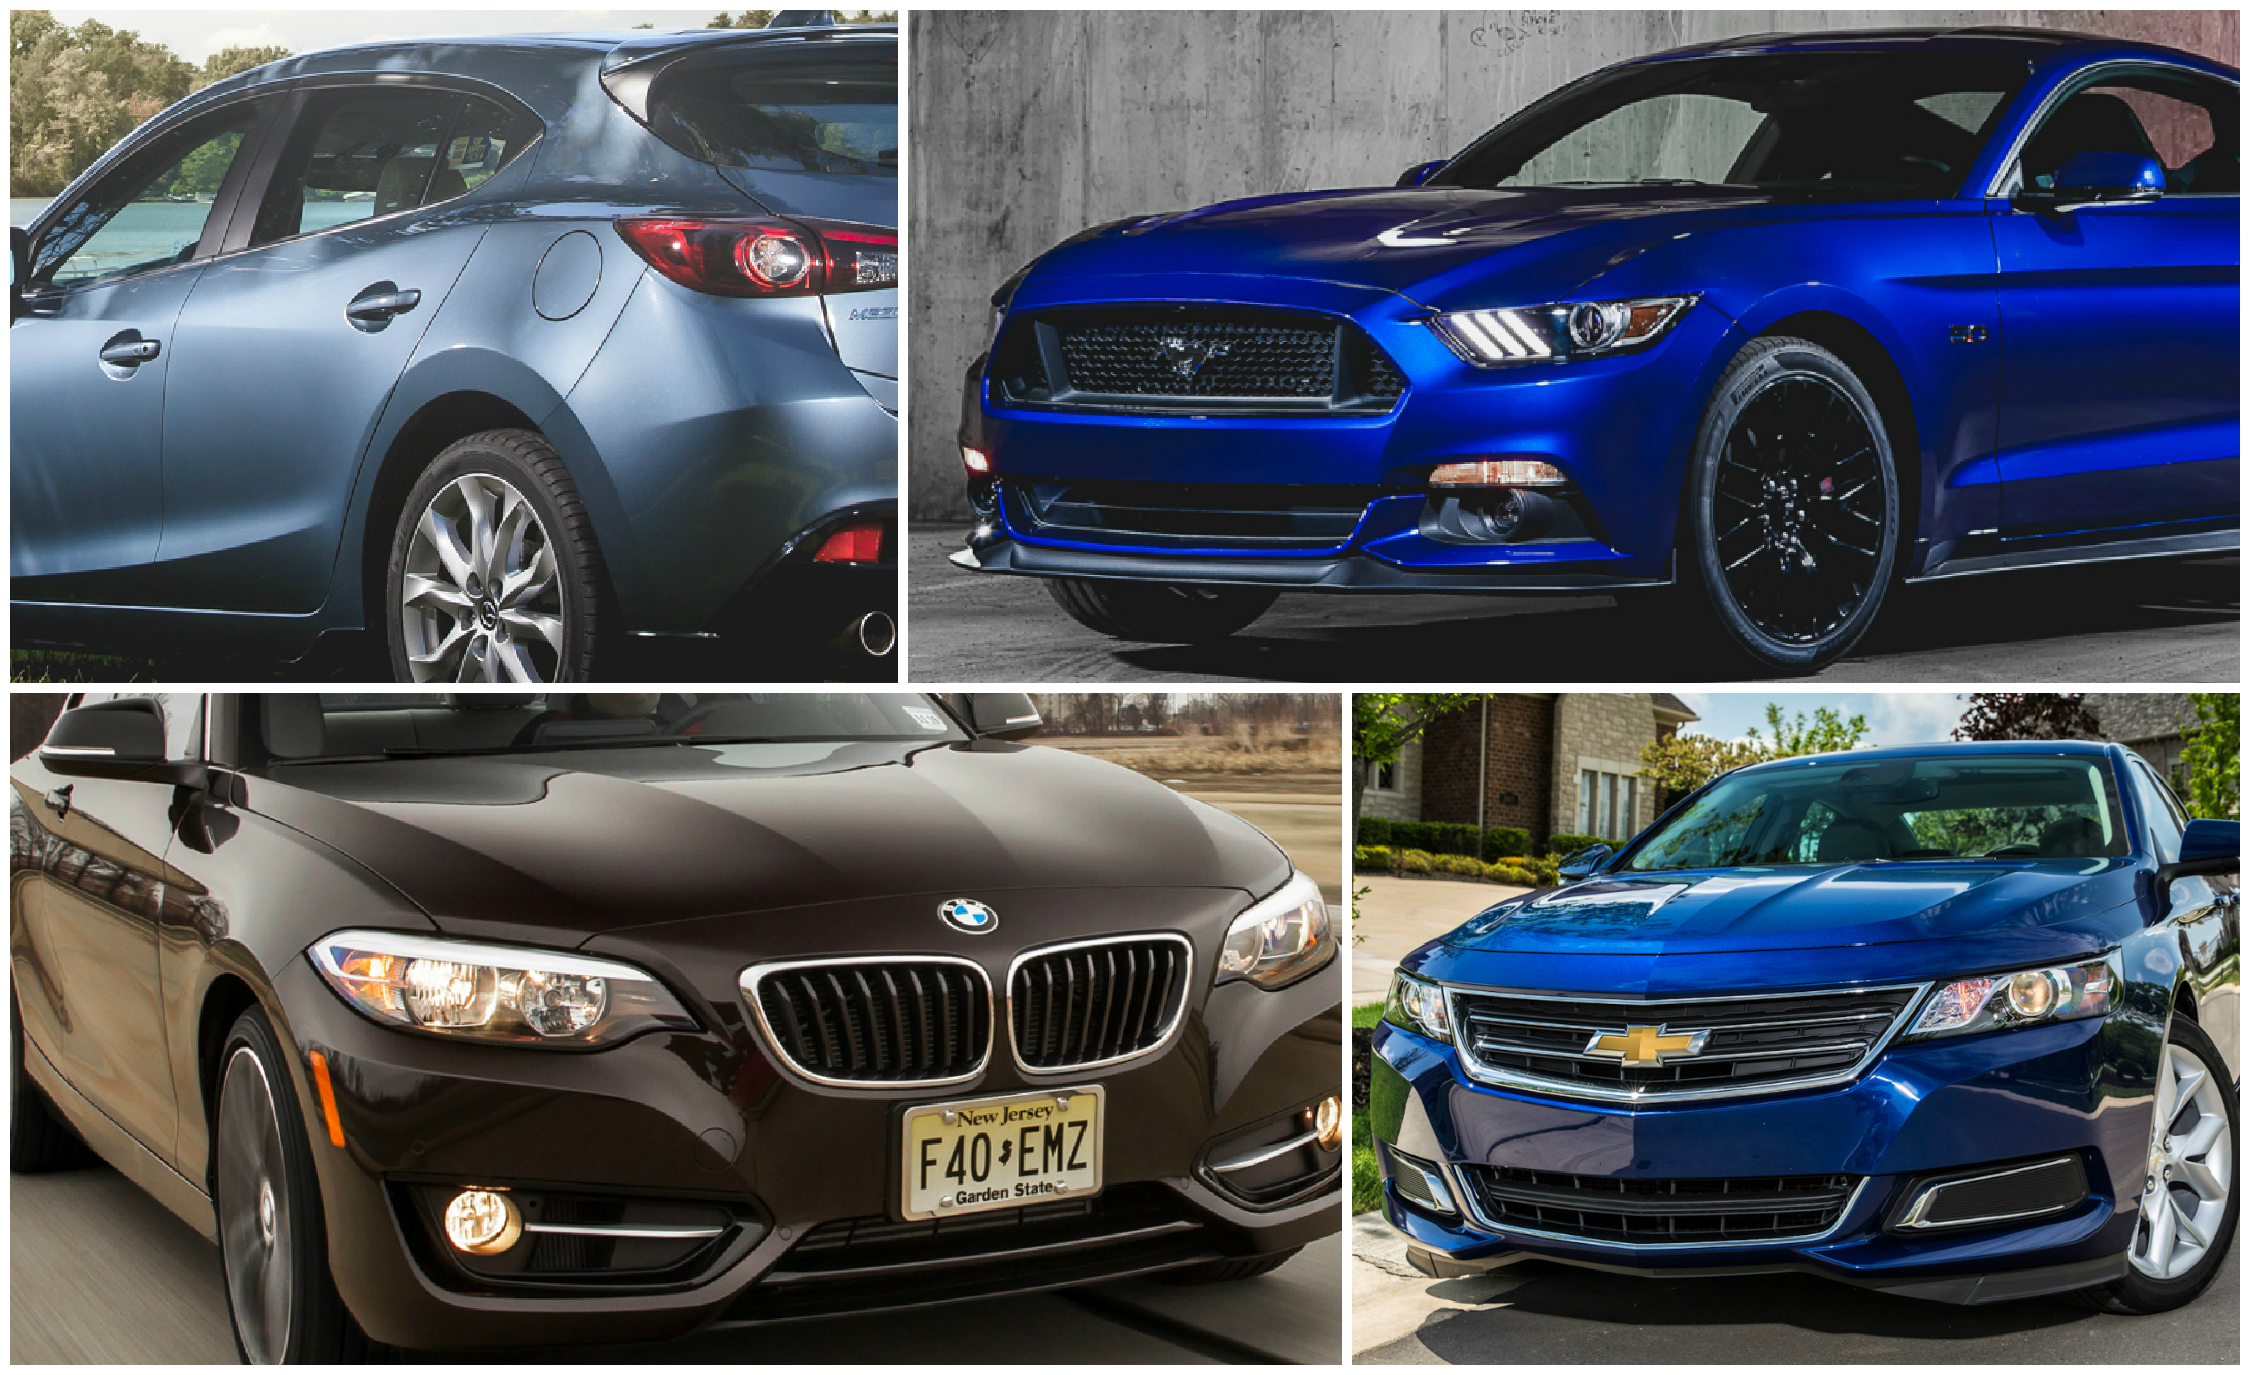 Exceptional Bargain Beauties: The 10 Best Looking Cars Under $35,000   Slide 1